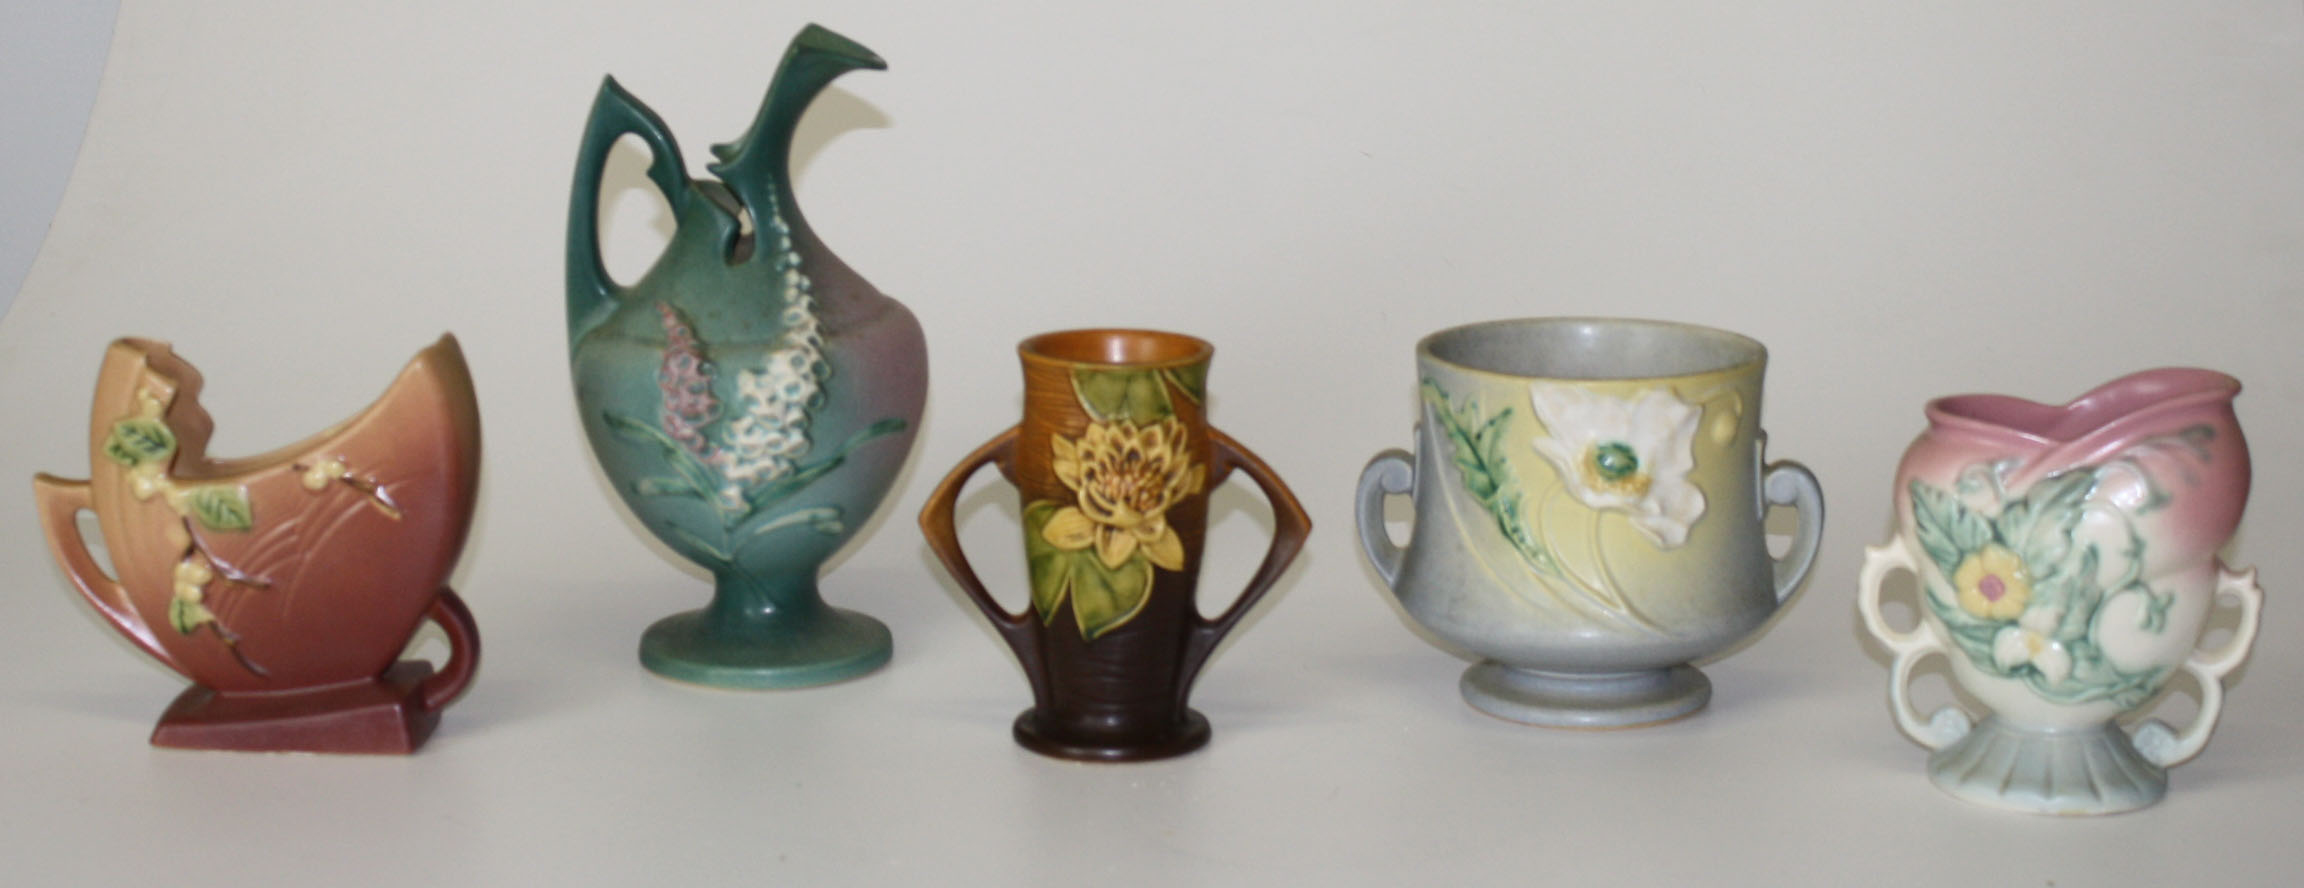 Roseville Pottery pieces JPG | Merrill's Auction